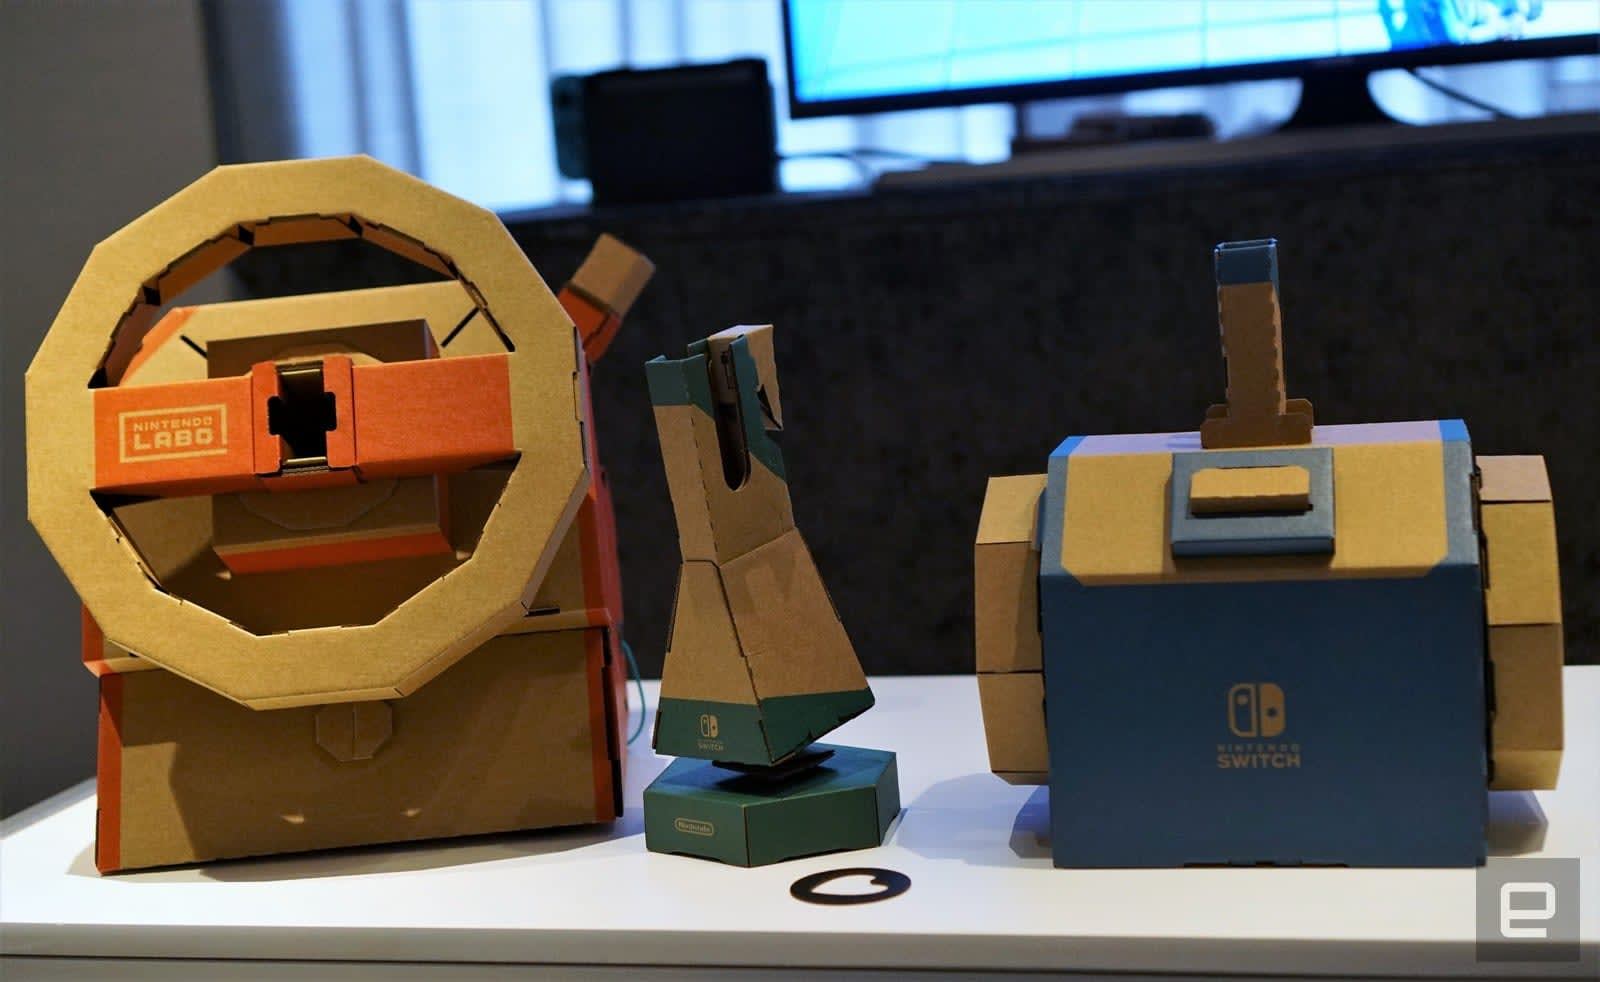 Nintendo Labo Vehicle Kit hands-on: The Toy-Cons we've been